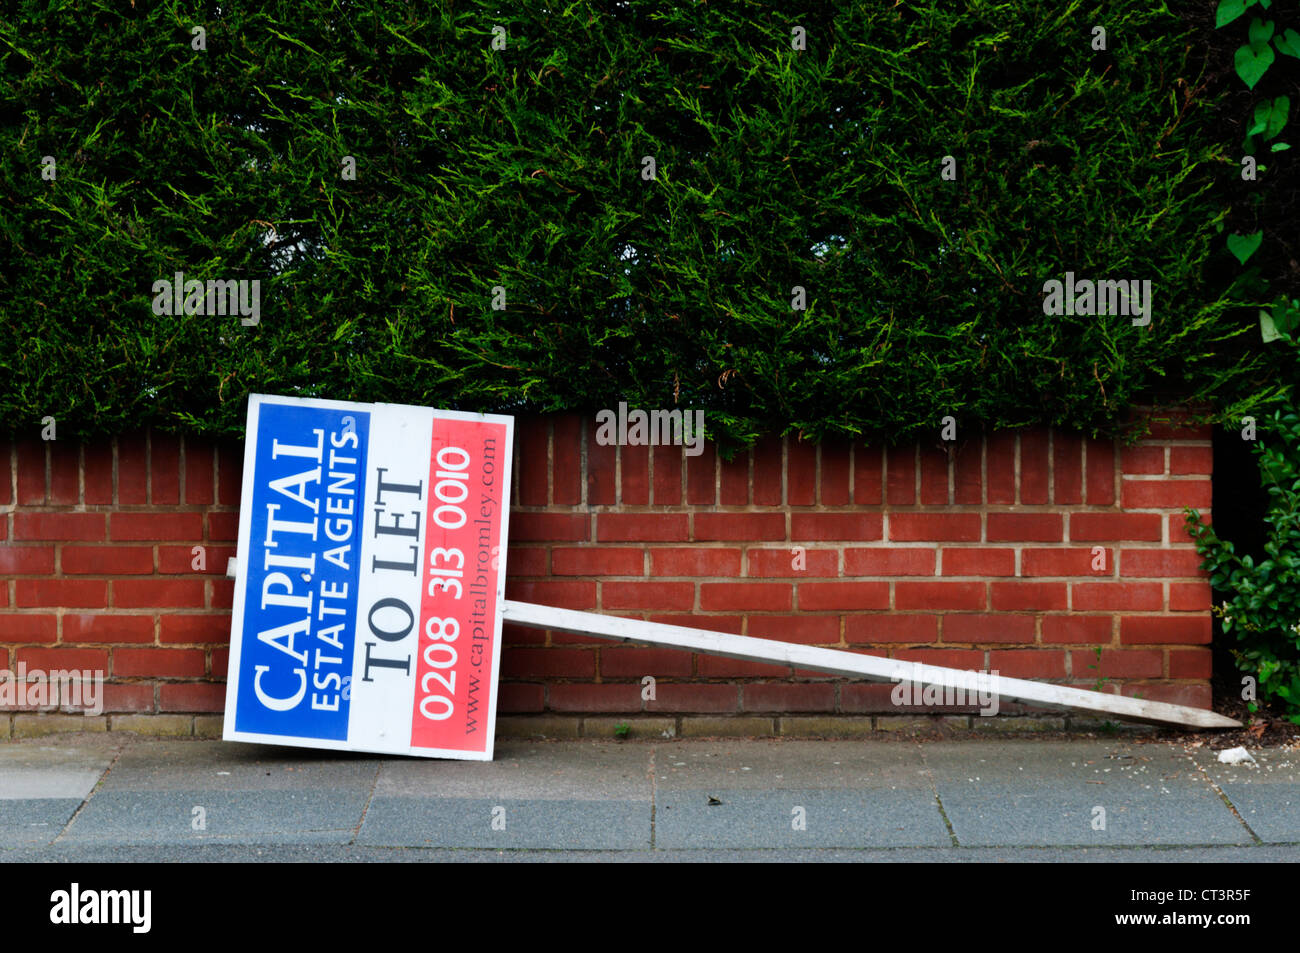 An Estate Agents' board on the pavement leant sideways against a garden wall. - Stock Image